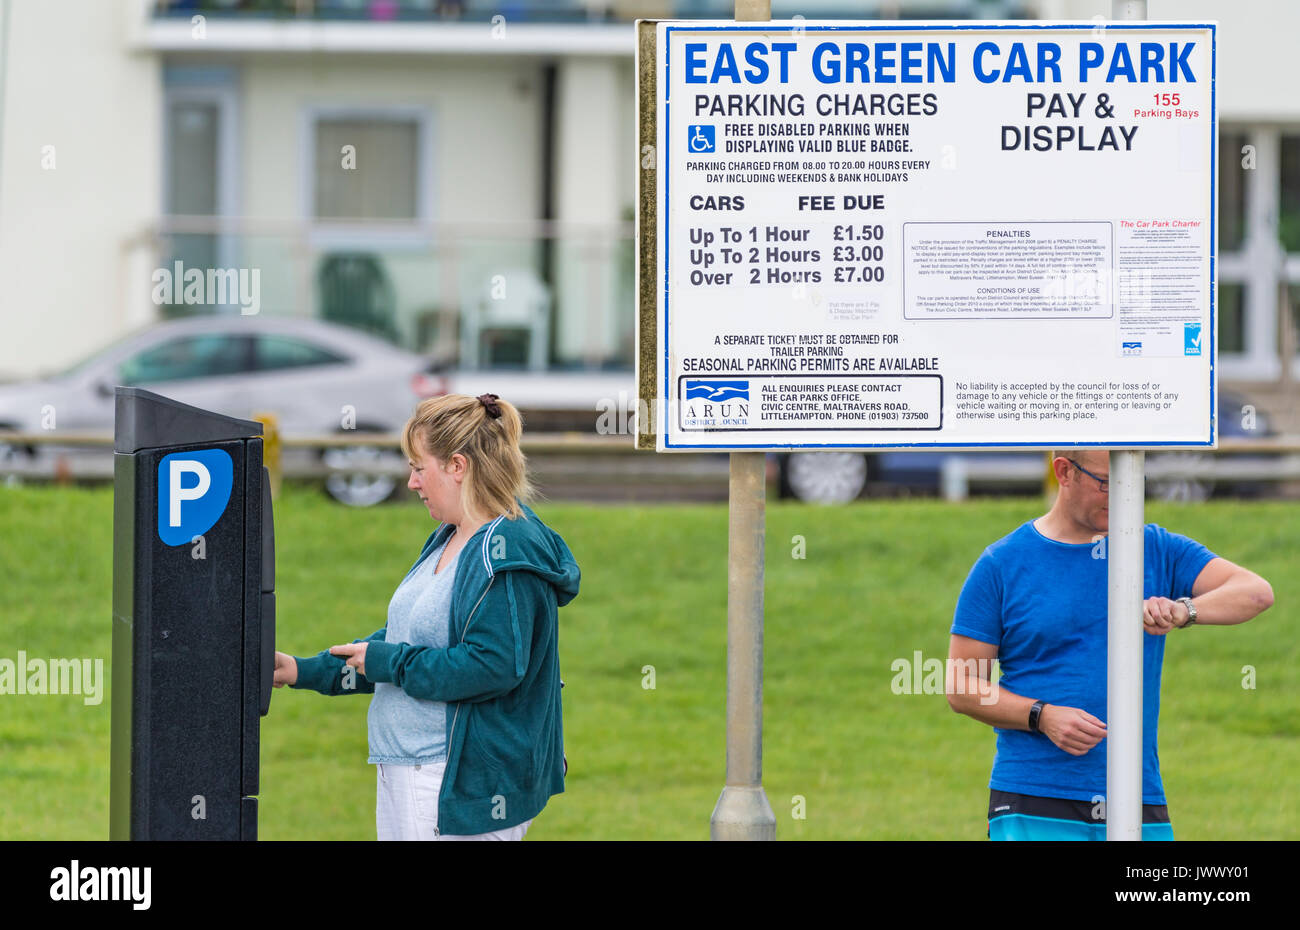 Woman putting money in a parking machine to purchase a ticket at a pay and display car park in the UK. - Stock Image